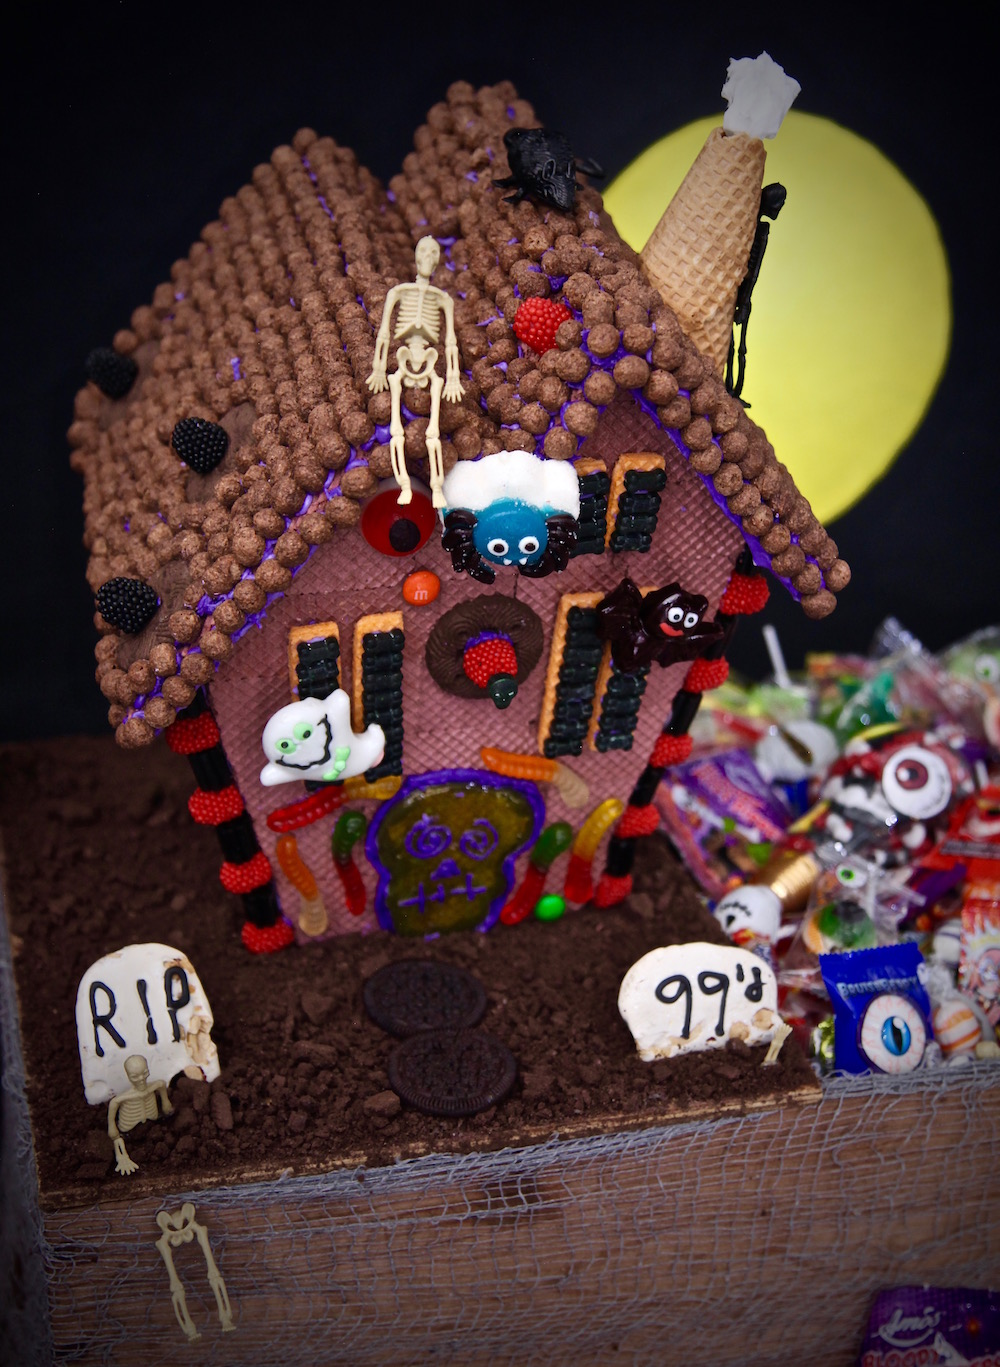 Epic Haunted house graveyard Halloween Candy box made with everything from the 99 cents only stores.